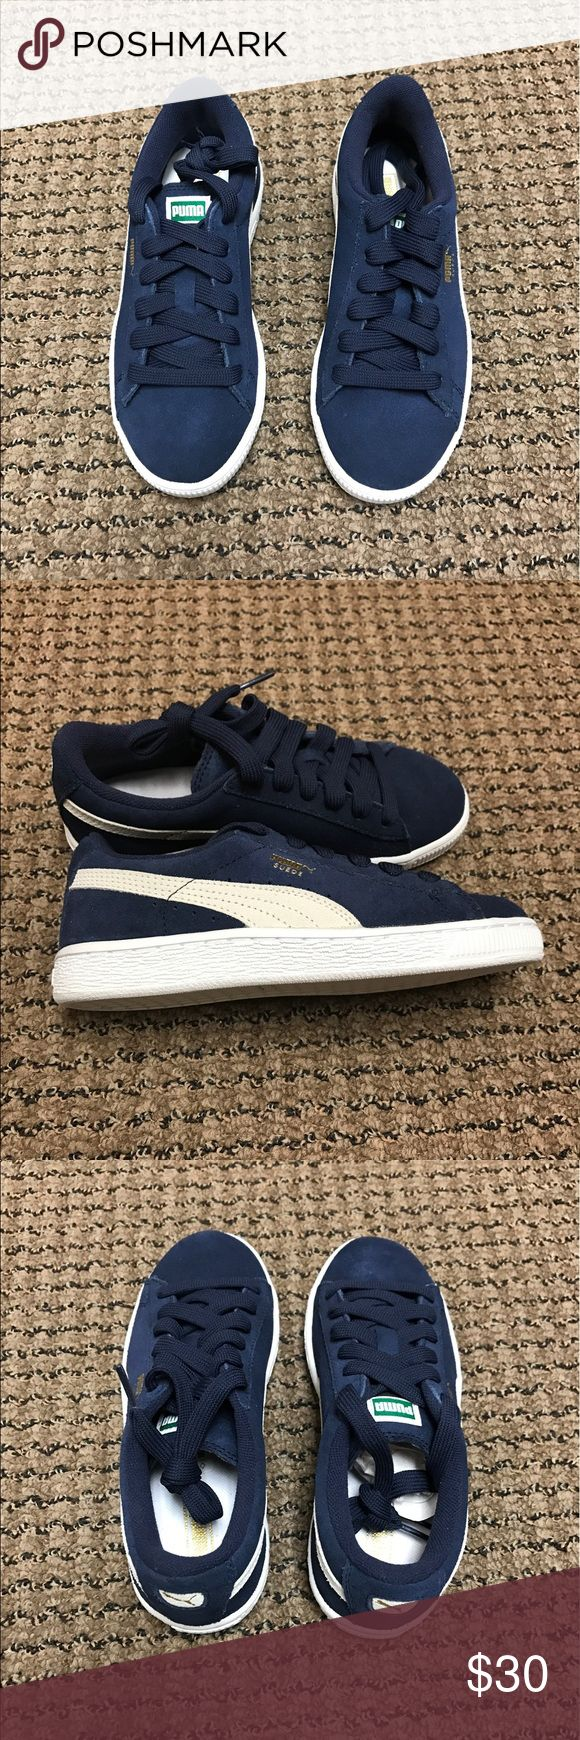 Brand New ❗️Blue Suede Pumas Brand New❗️❗️size 2.5 Puma Shoes Sneakers